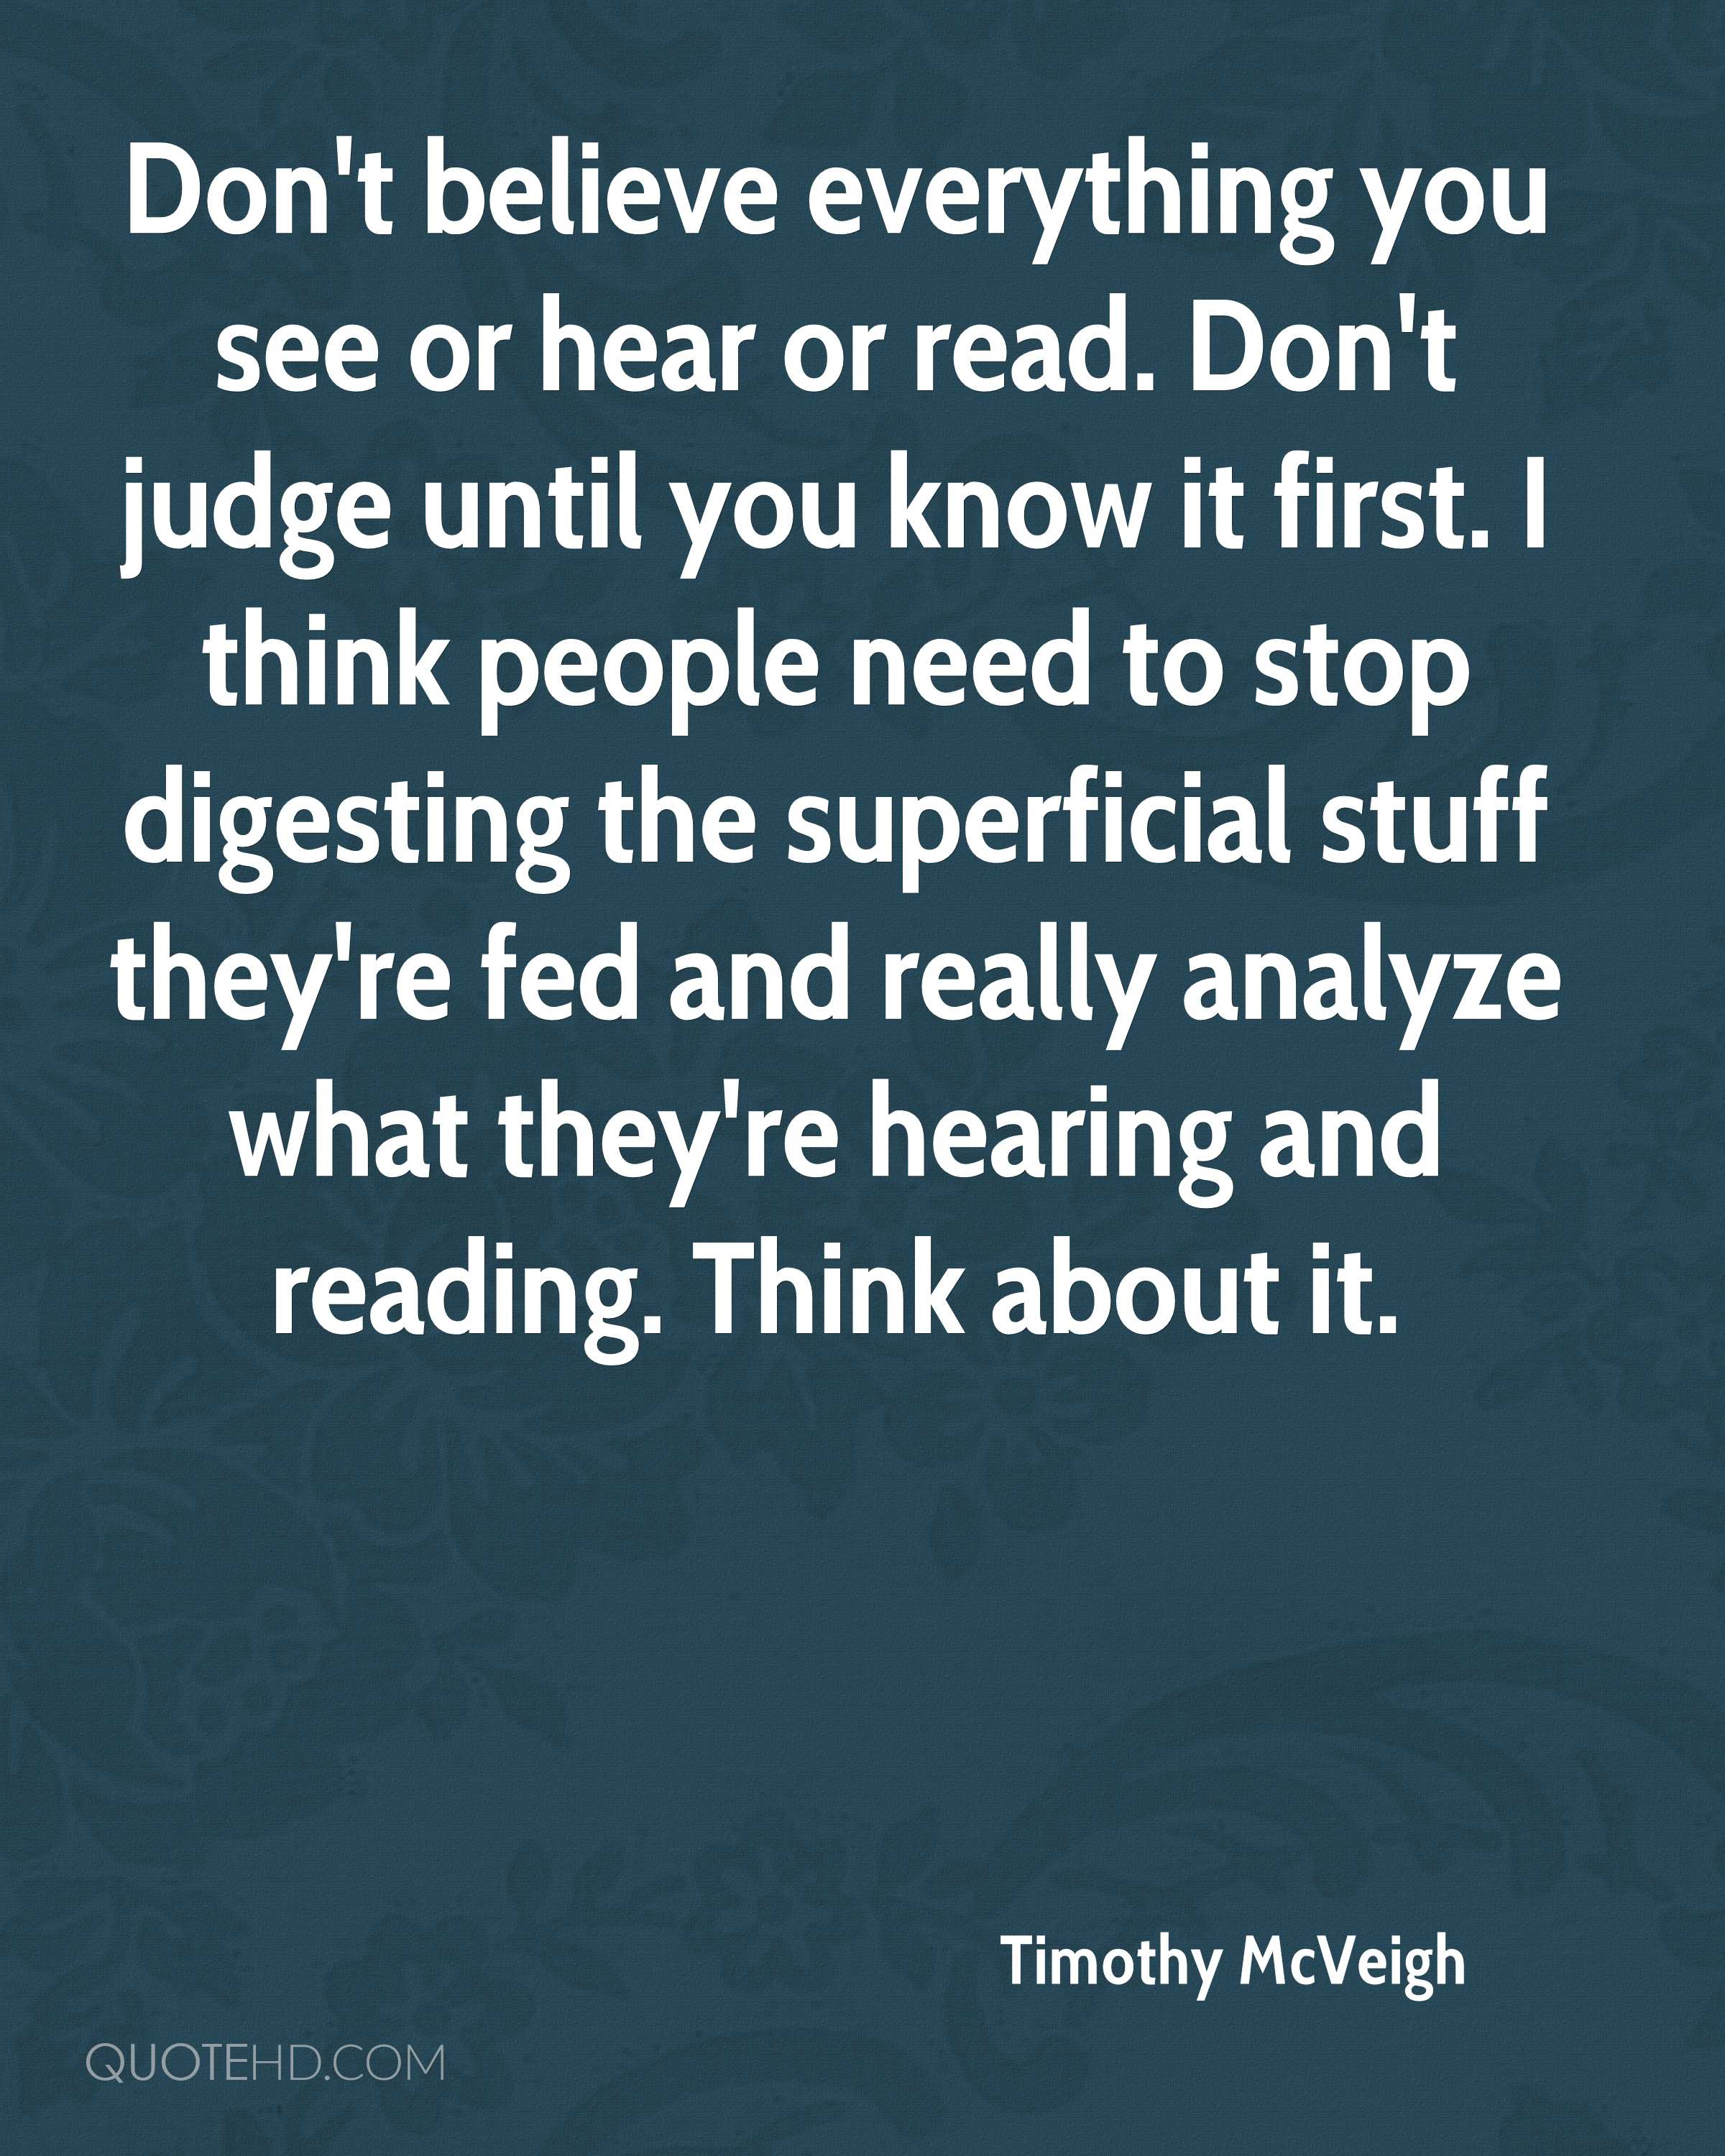 Don't believe everything you see or hear or read. Don't judge until you know it first. I think people need to stop digesting the superficial stuff they're fed and really analyze what they're hearing and reading. Think about it.